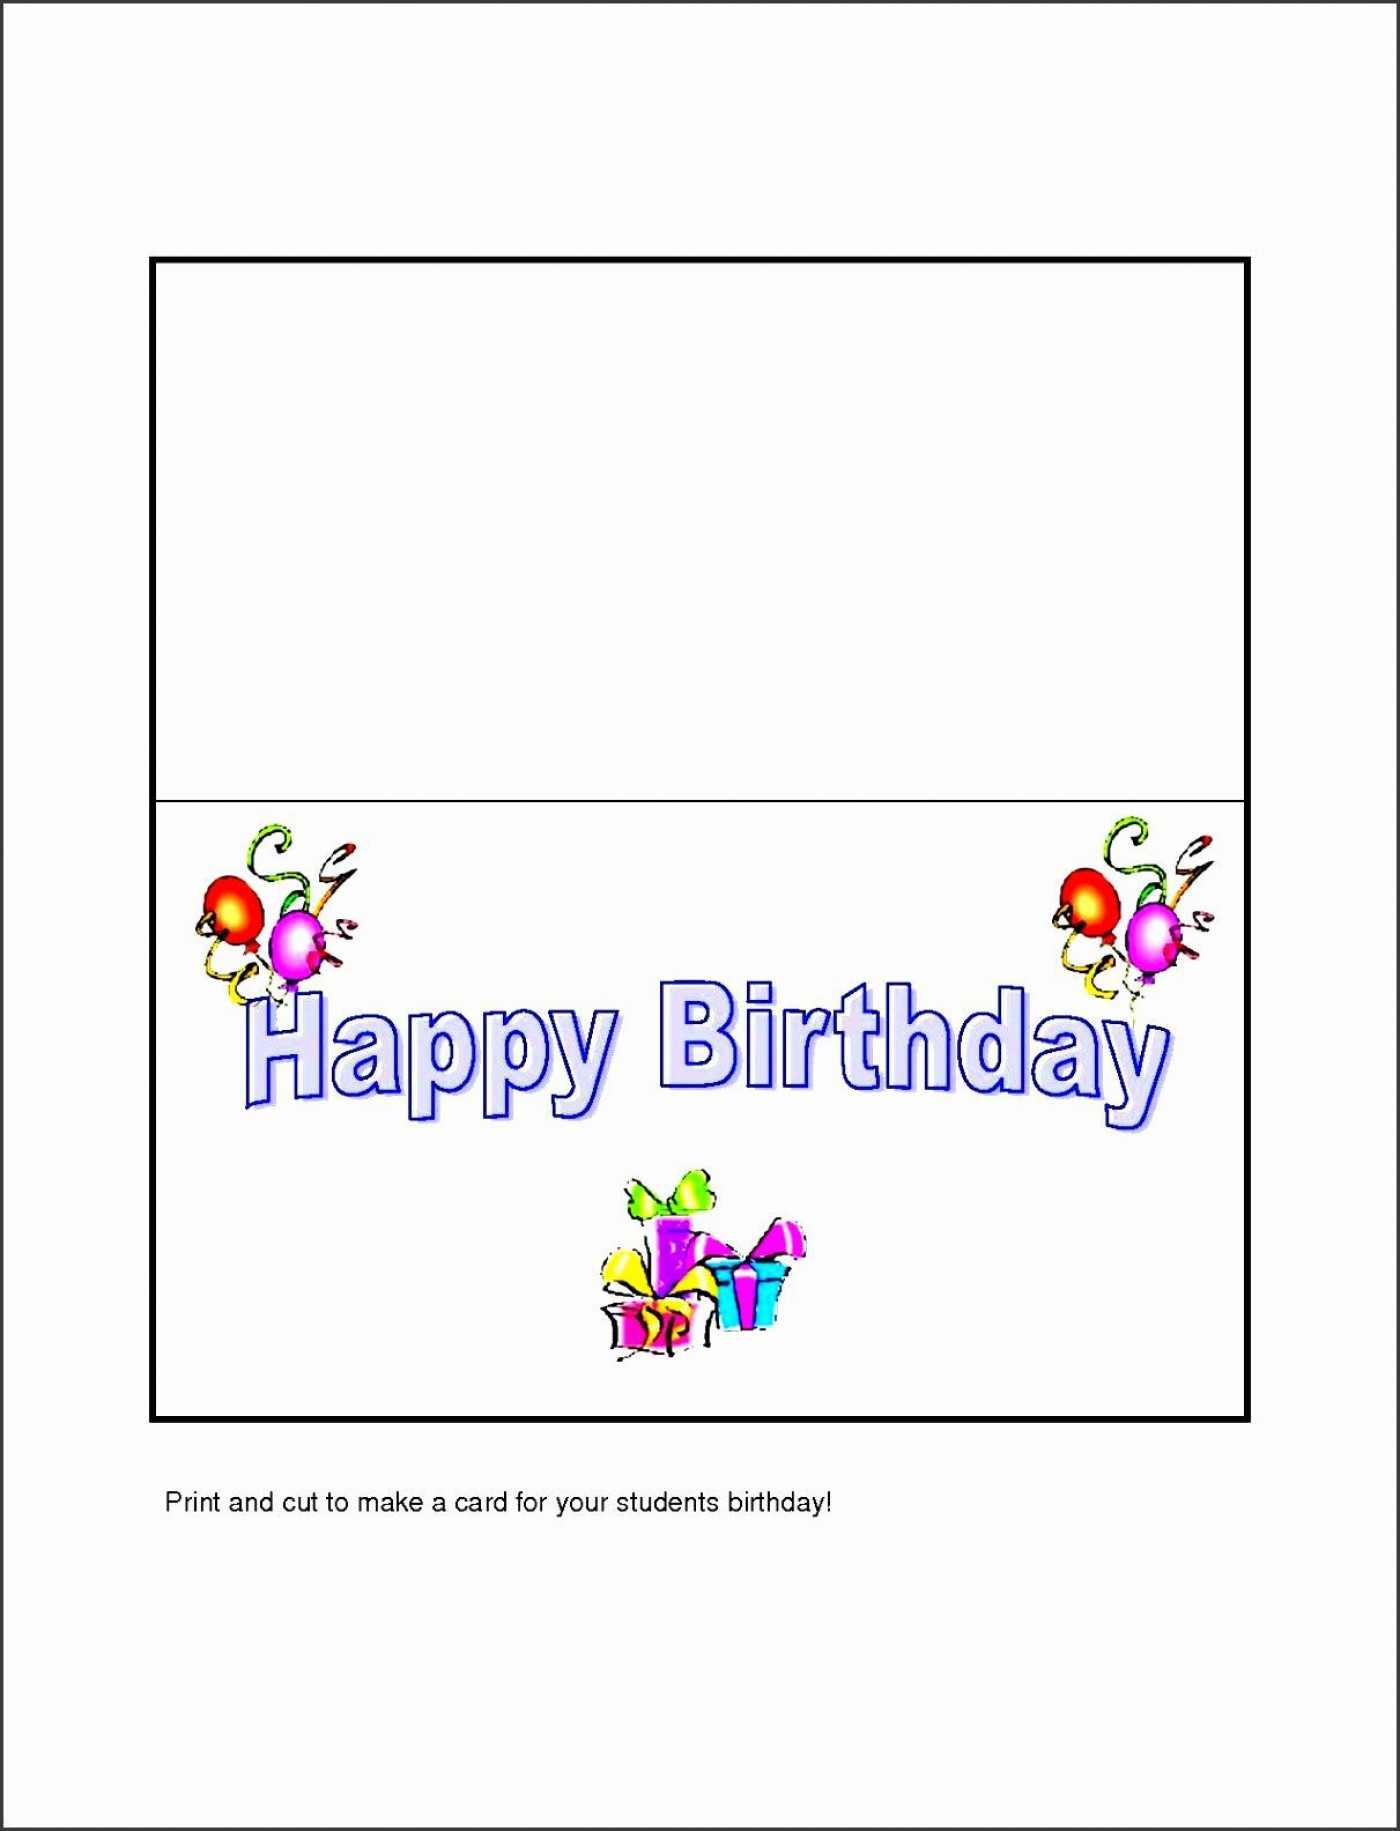 009 Top Microsoft Word Card Template Picture  Birthday Download Busines Free1400